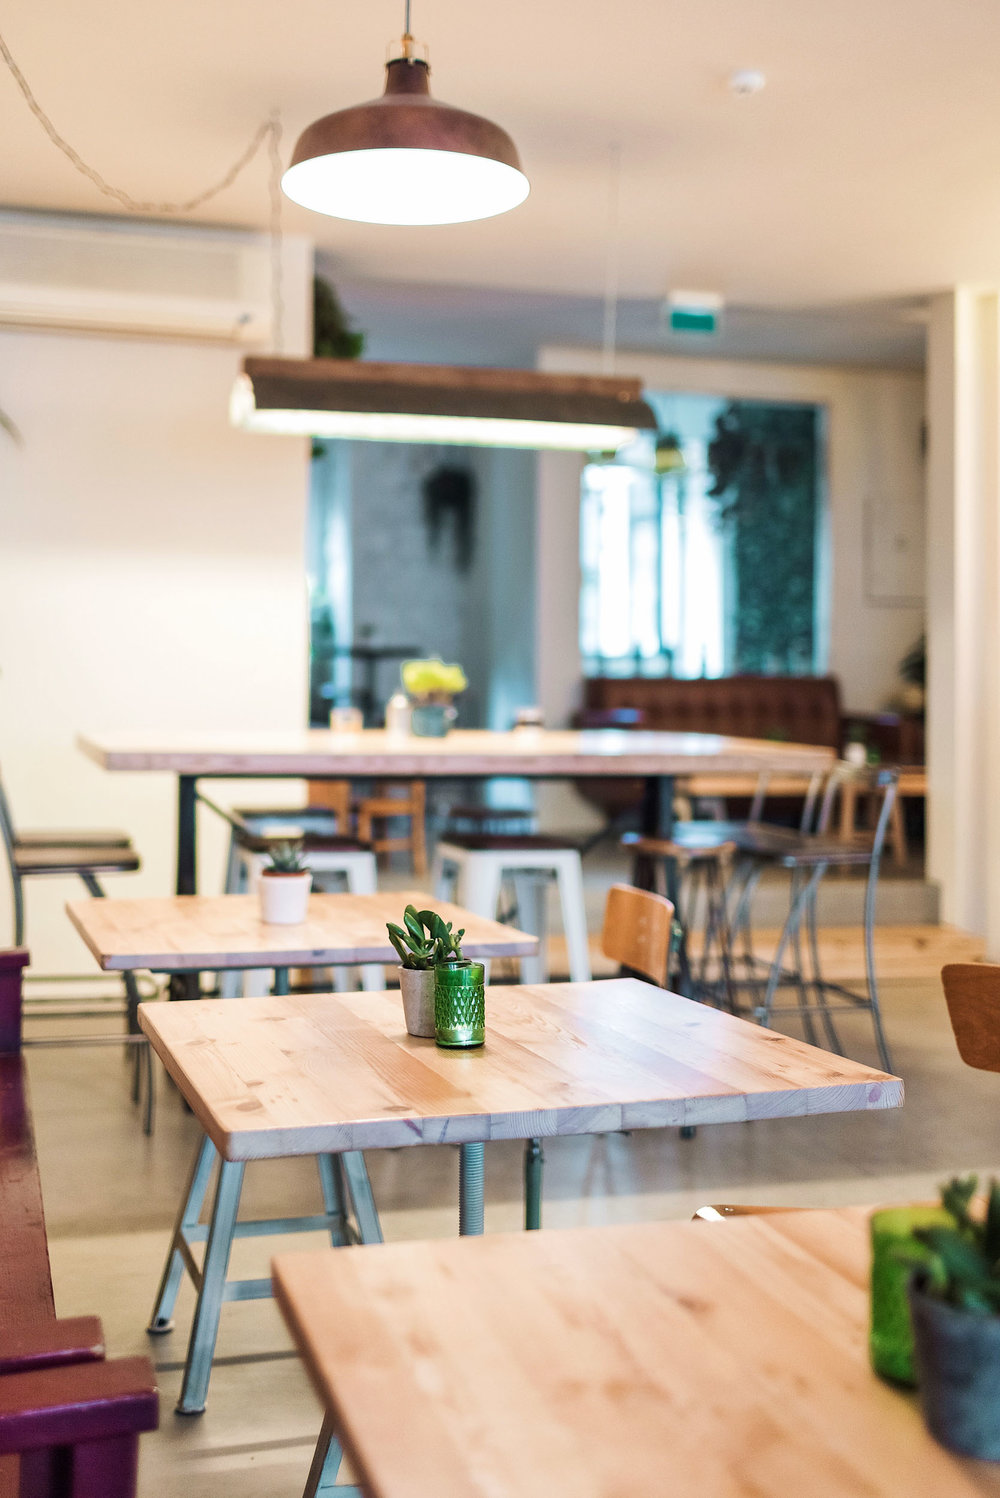 Fauna & Flora in Lisbon is a delicious and healthy restaurant option